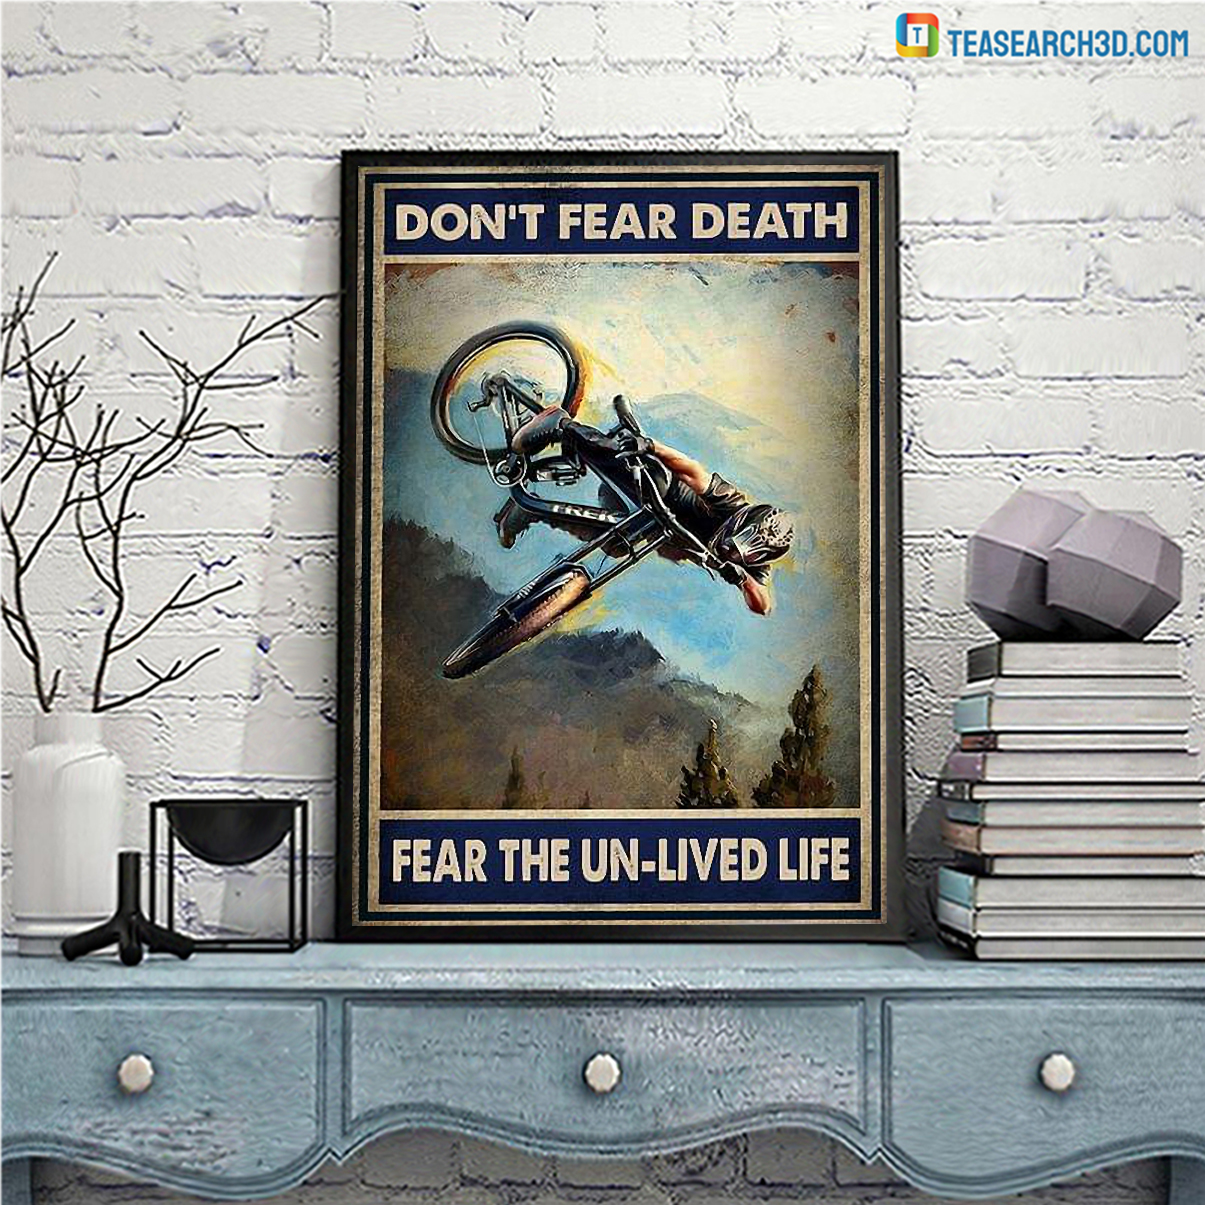 Mountain bike don't fear death fear the un-lived life poster A2